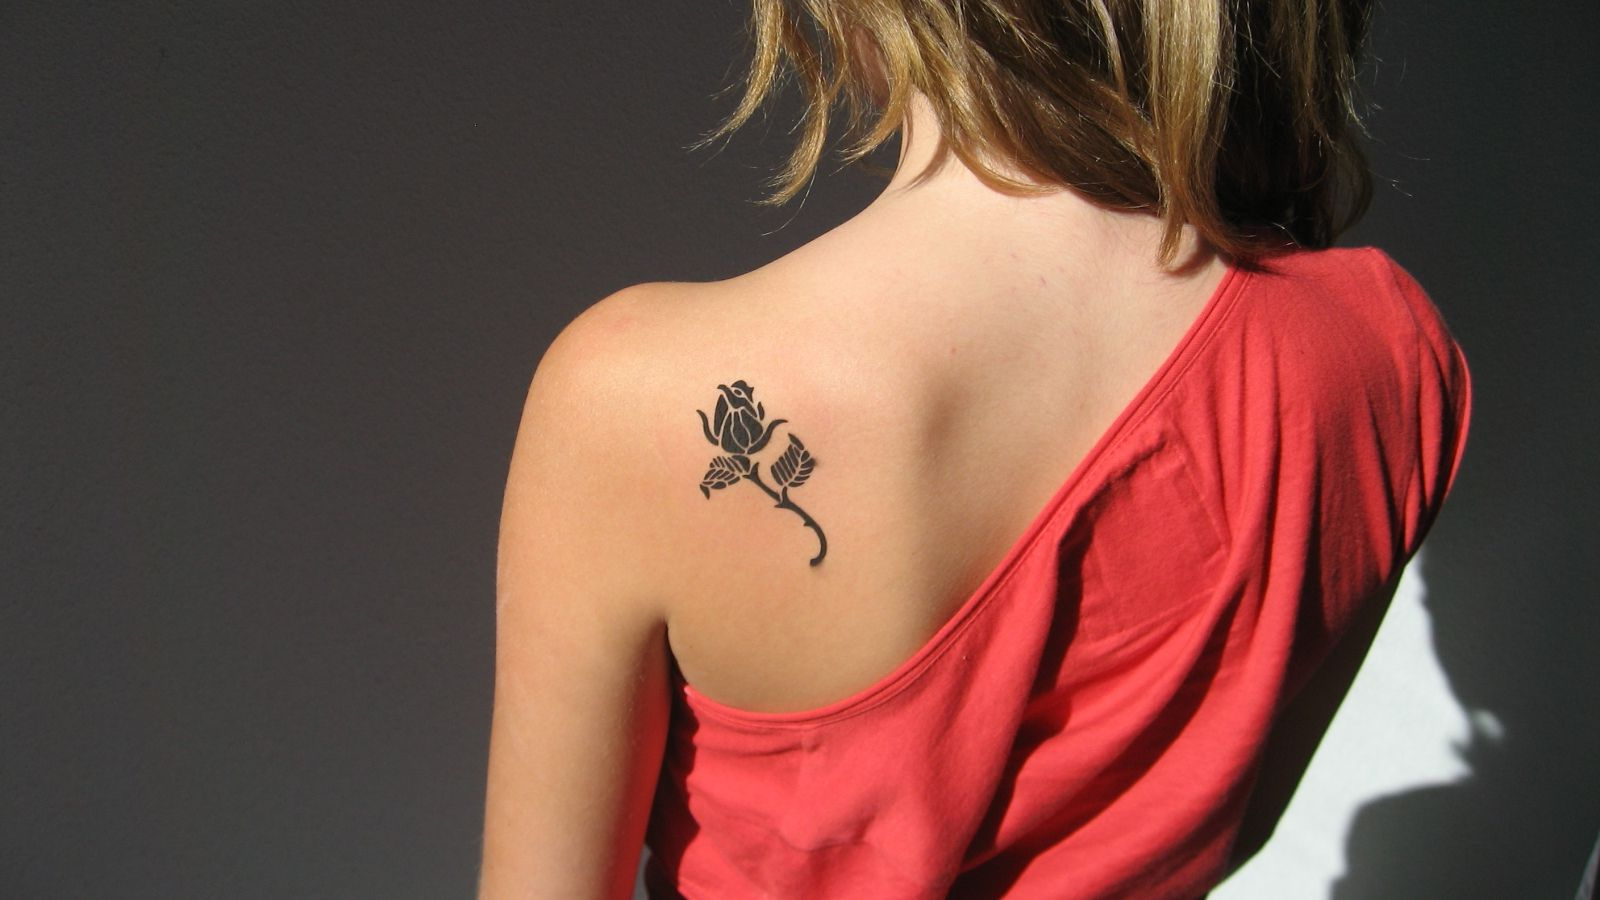 Girl Tattoos On Shoulder Blade 30 Small Cute Tattoos For Girls intended for sizing 1600 X 900